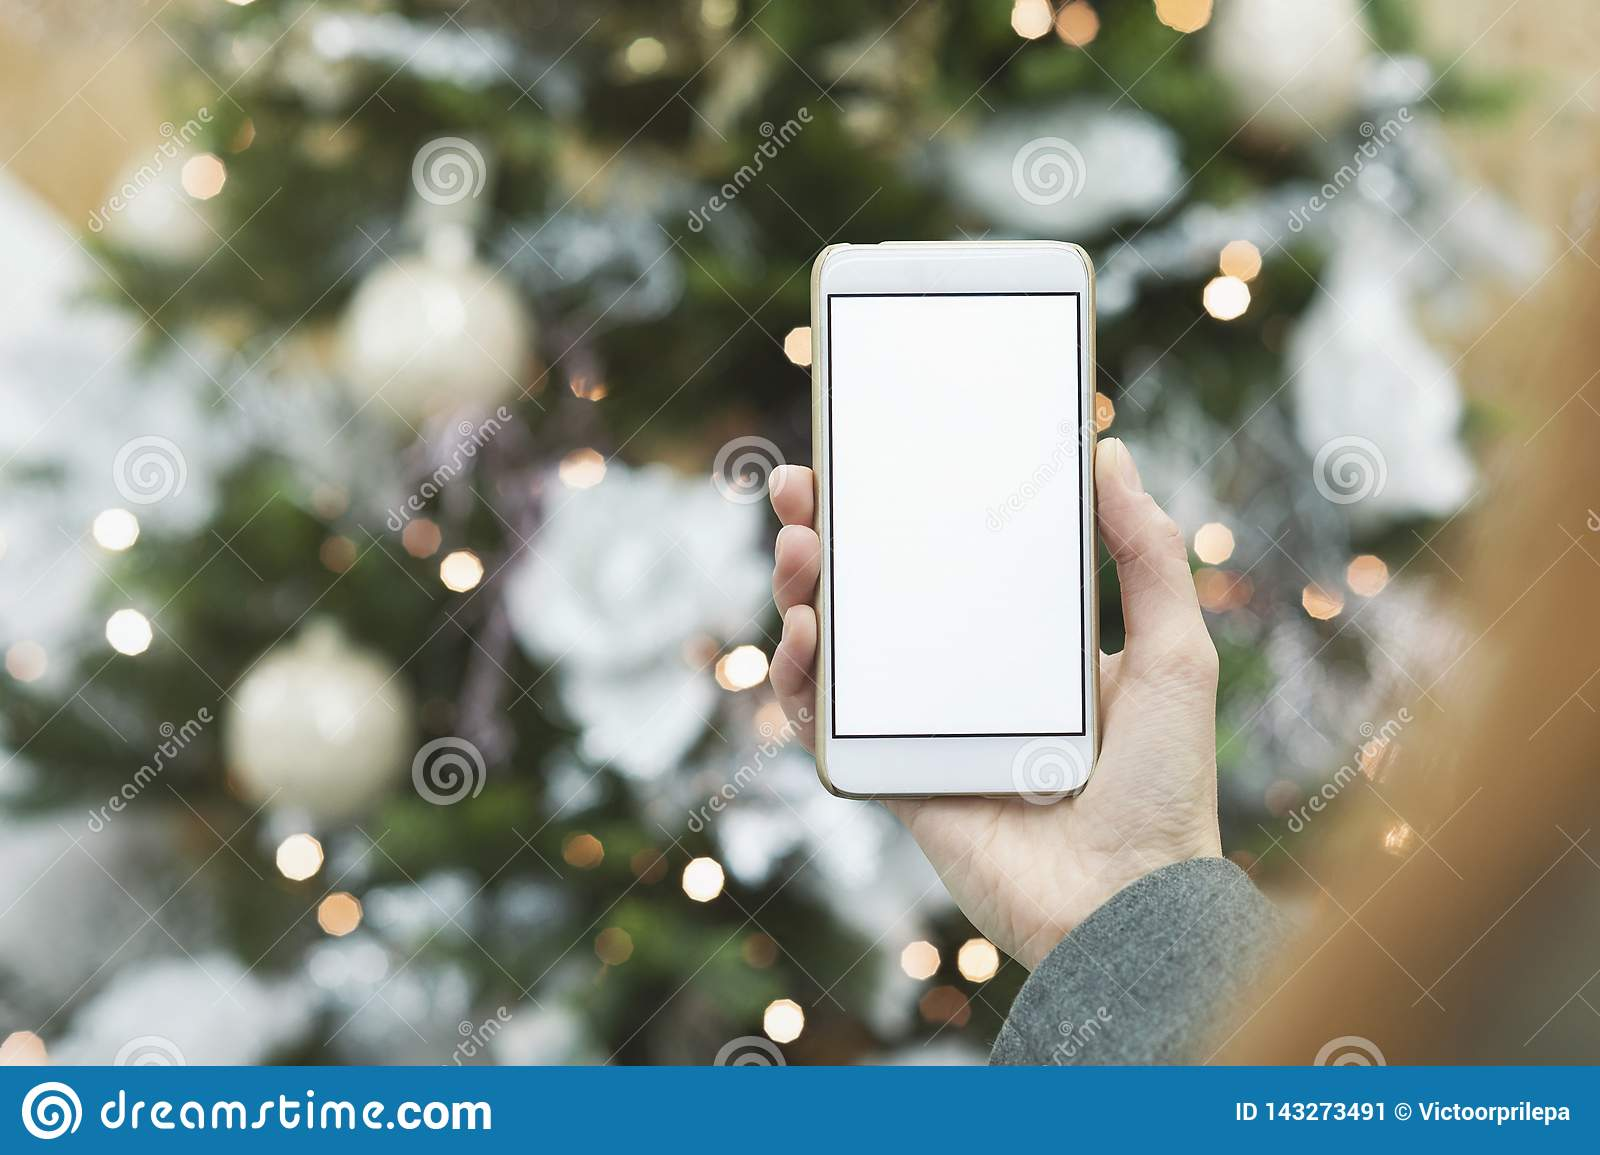 Mock up of the smartphone in the hand of the girl on the background of the Christmas tree with a festive decoration.